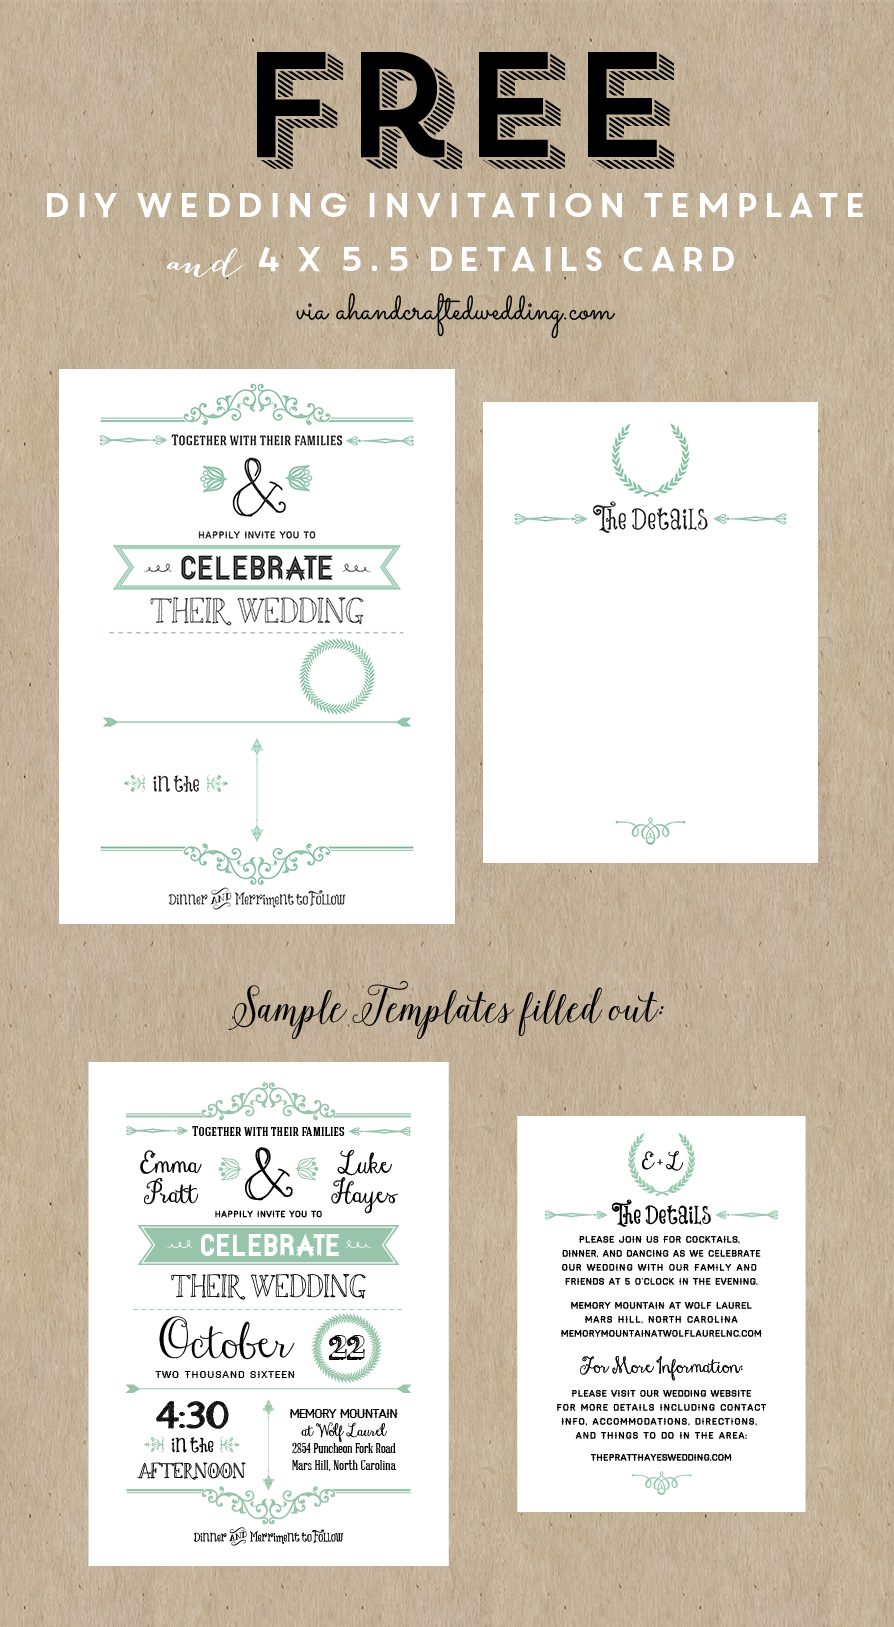 FREE Printable Wedding Invitation Template Free wedding invitation